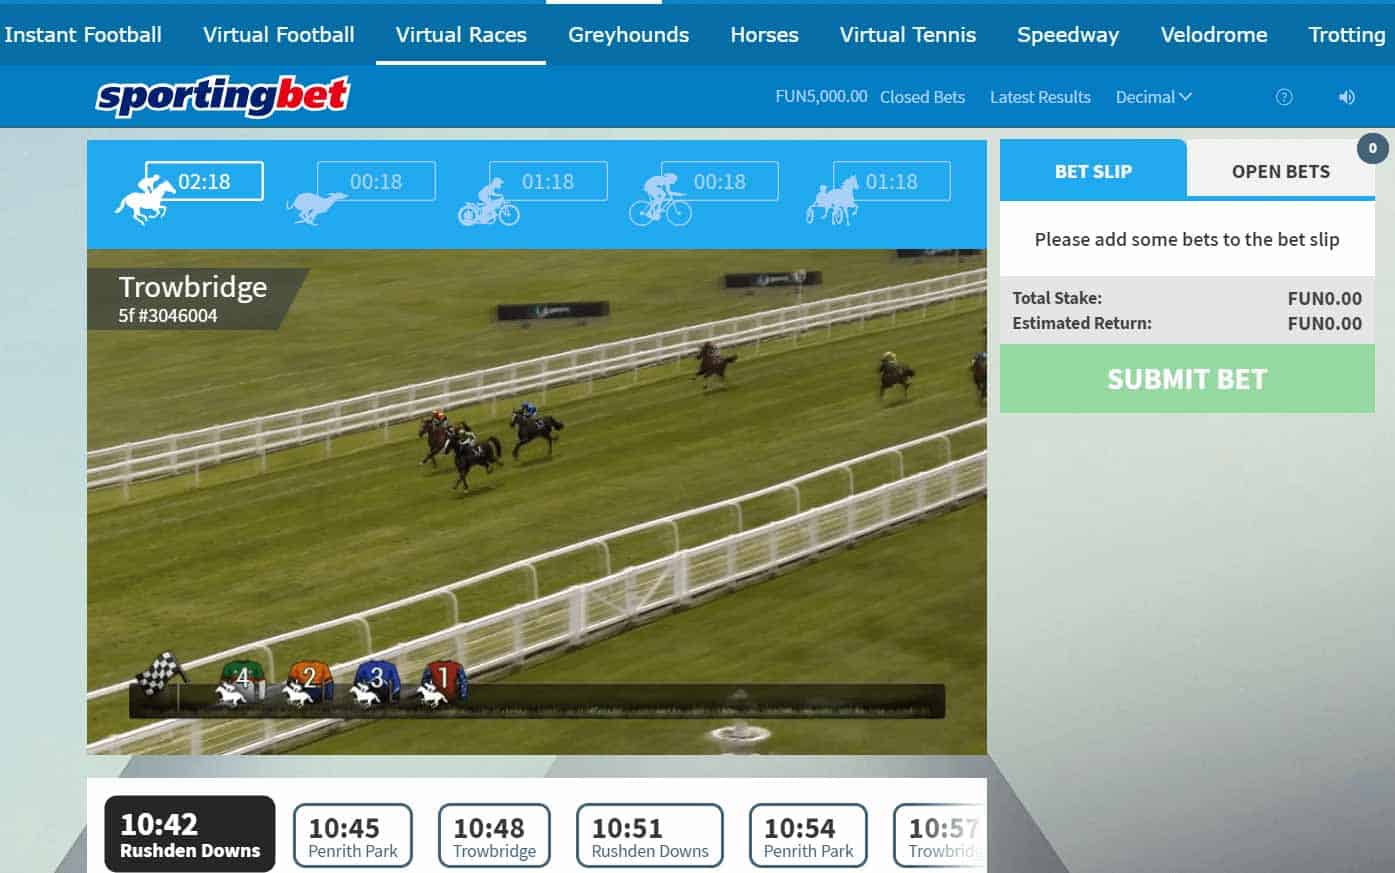 screenshot of virtual horse racing at Sportingbet